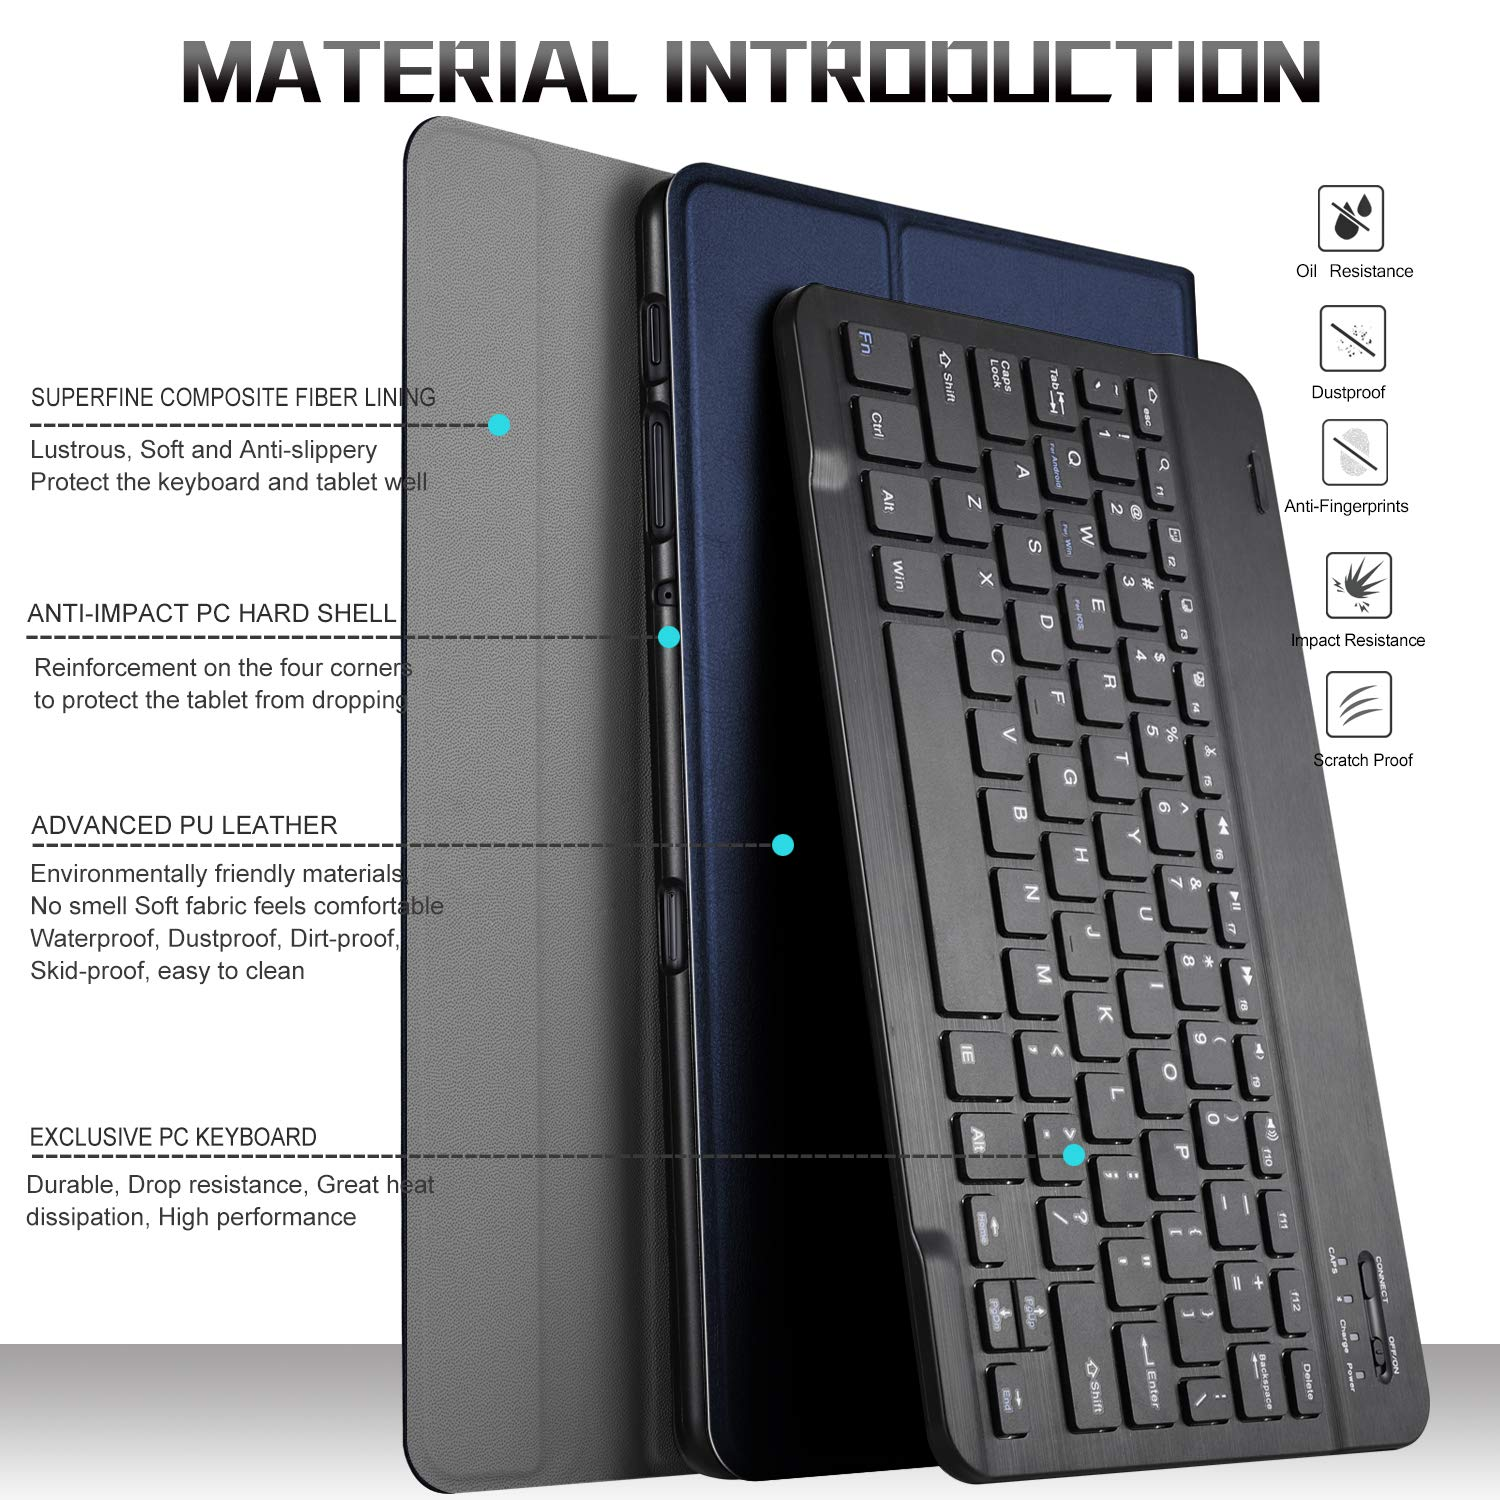 ... Wireless Keyboard Stand Case/Cover for Samsung Galaxy Tab A 10.5 2018 Release SM-T590 (Wi-Fi)& SM-T595 (LTE) Tablet(Blue): Computers & Accessories